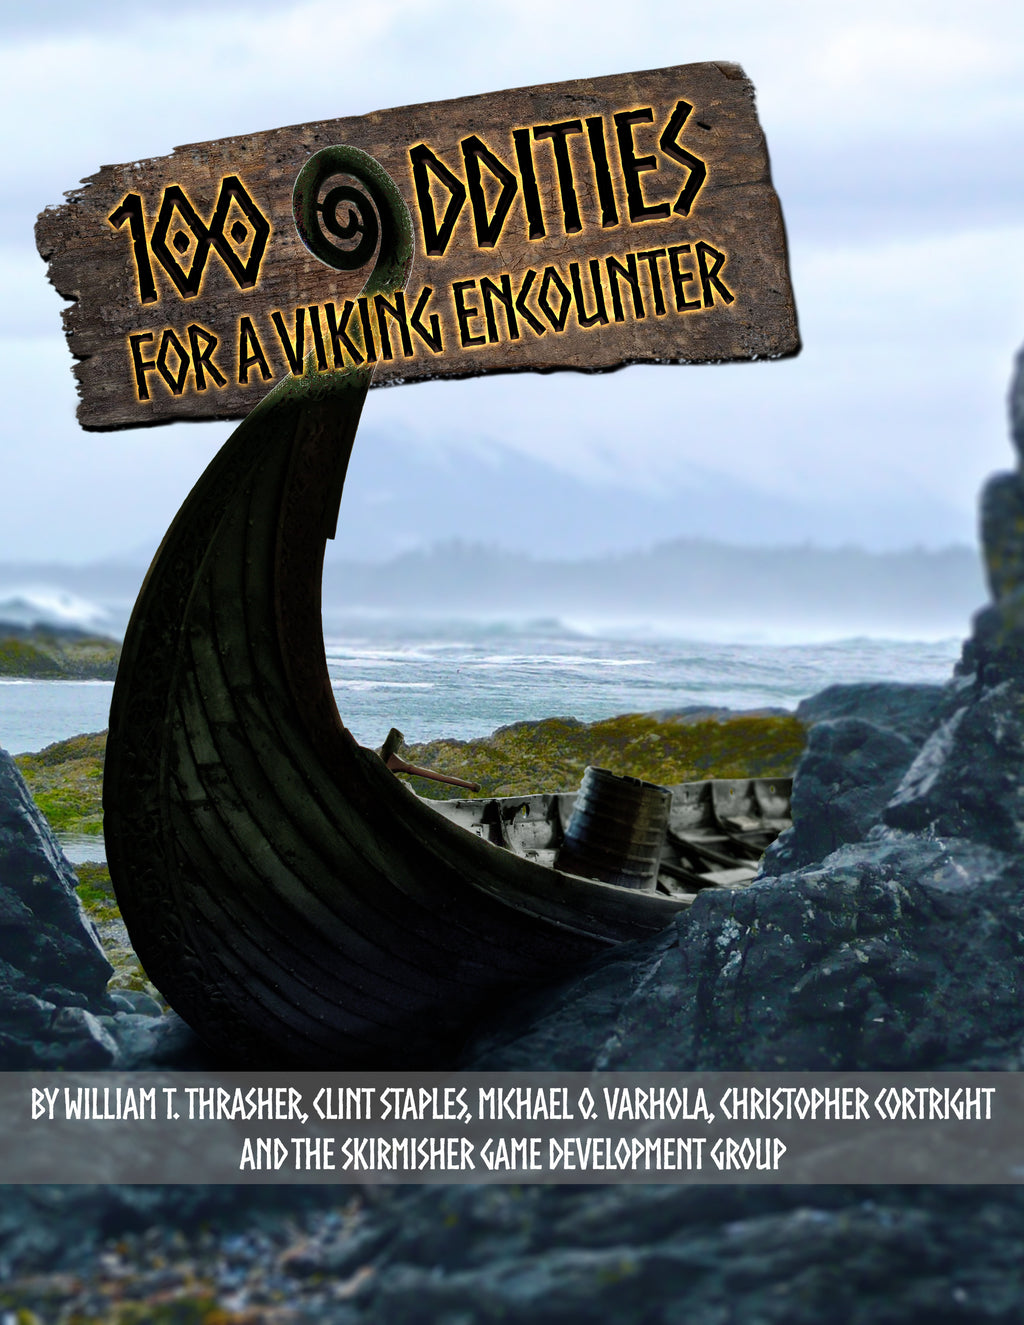 100 Oddities for a Viking Encounter